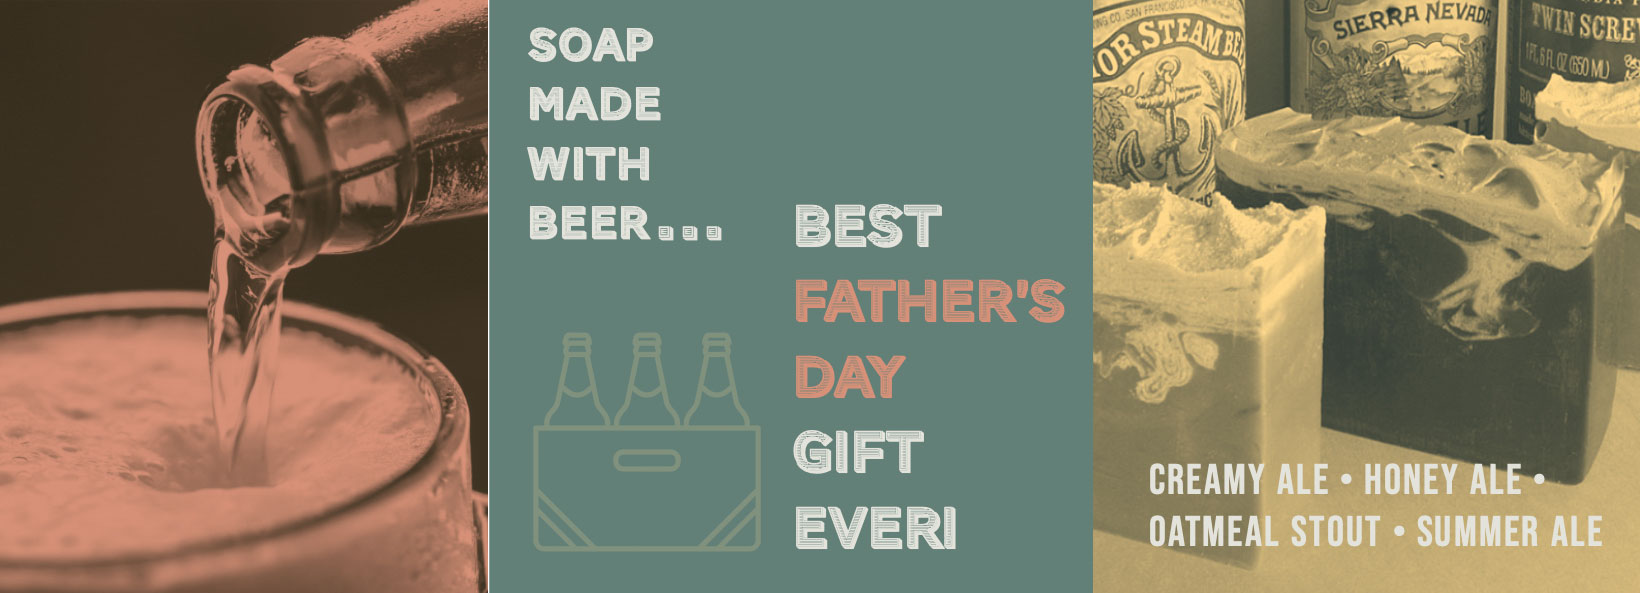 Beer Soap for Father's Day